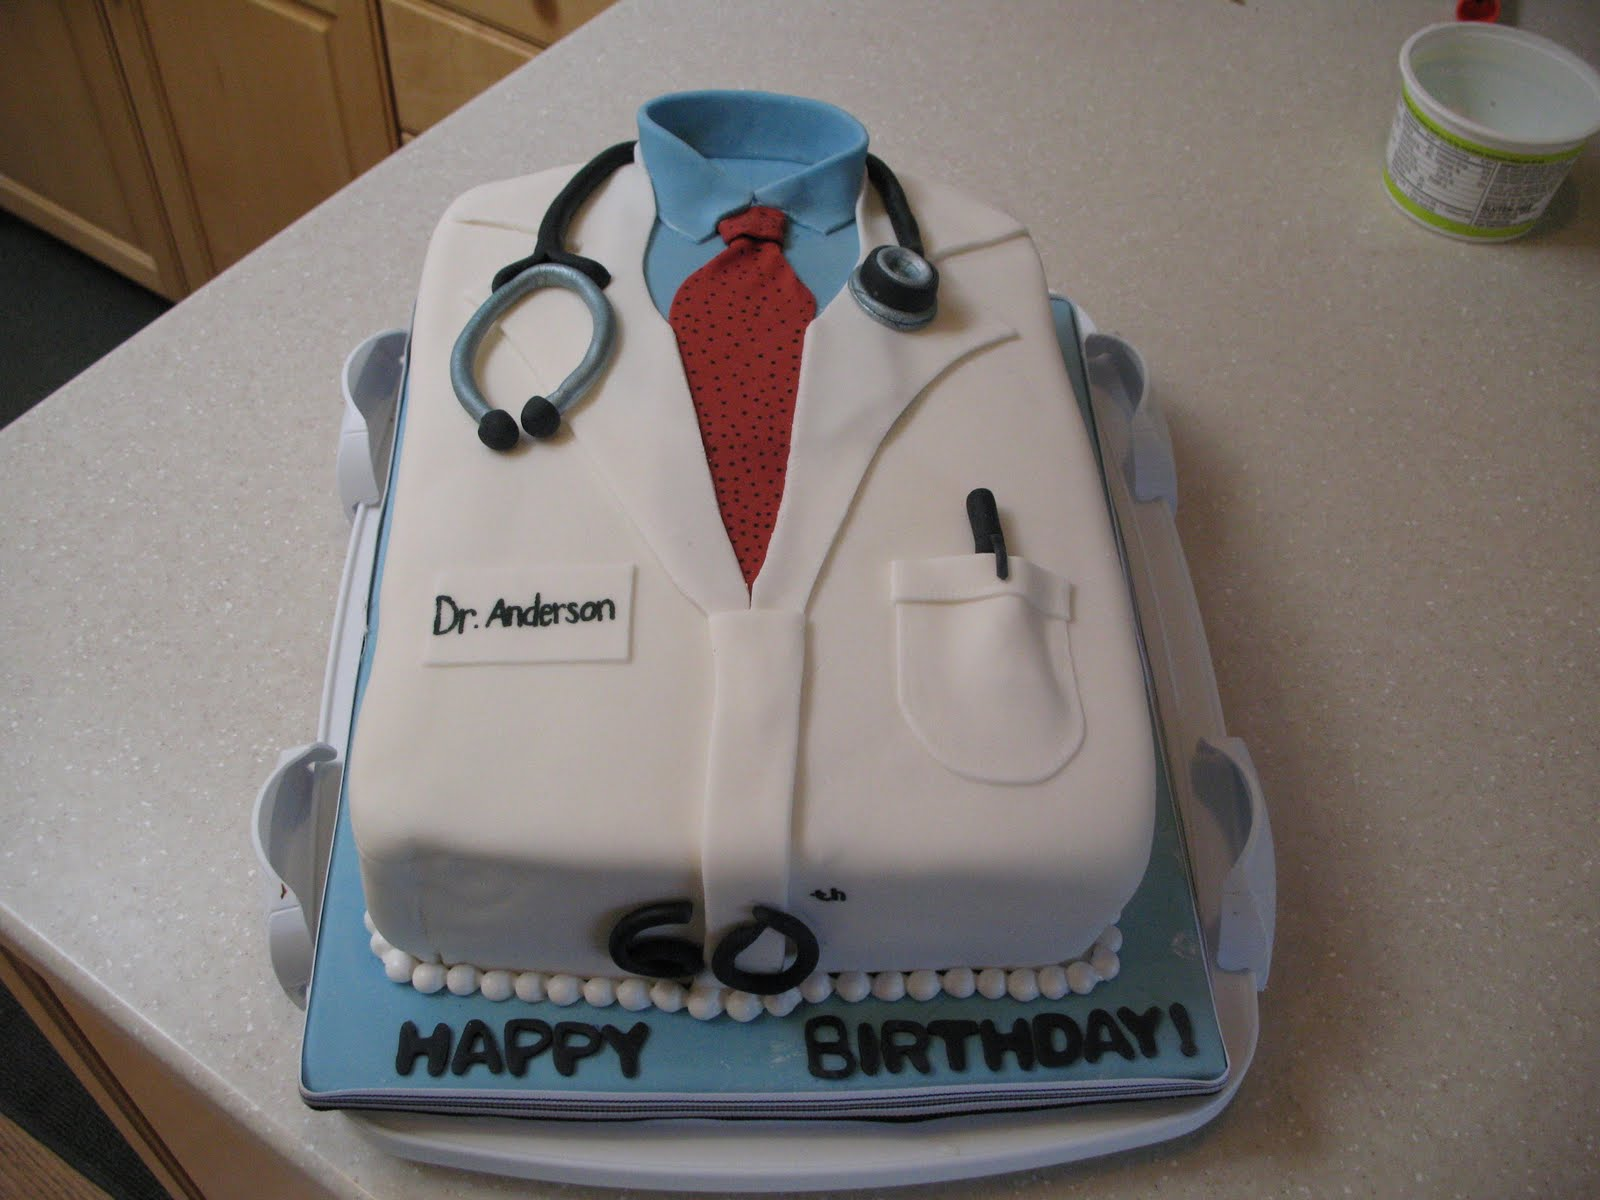 Doctor Birthday Cake Ideas Image Inspiration of Cake and Birthday